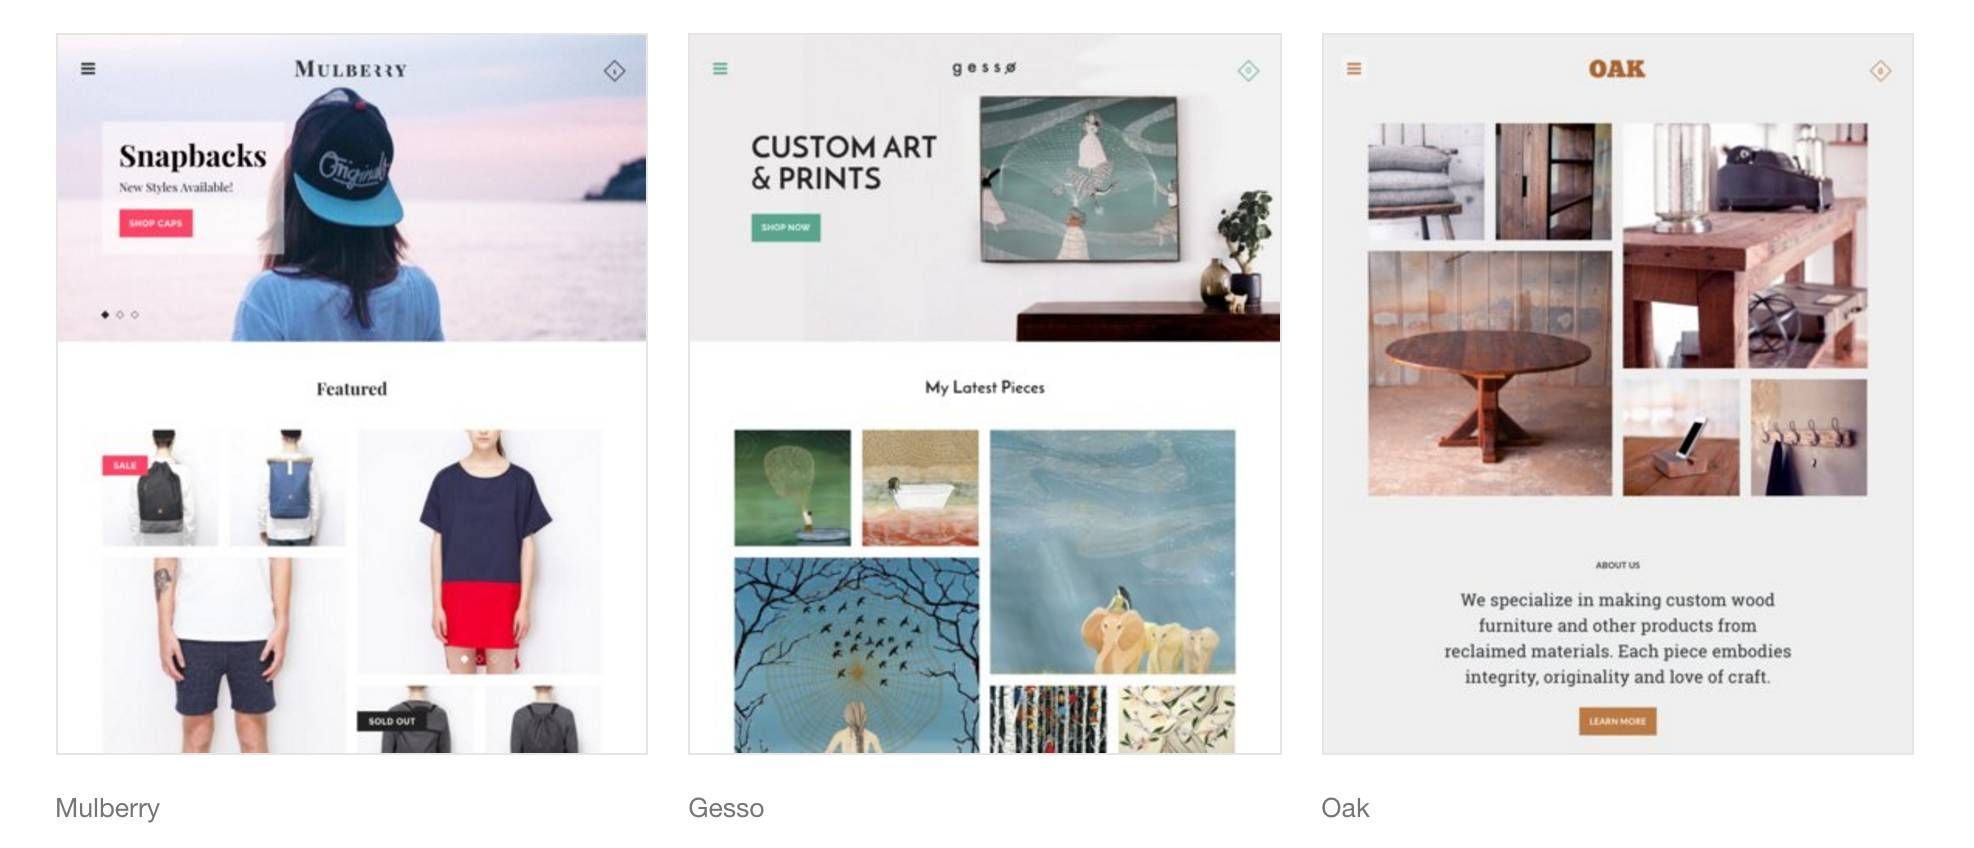 21 Best Responsive Shopify Themes for 2018 Make A Website Hub